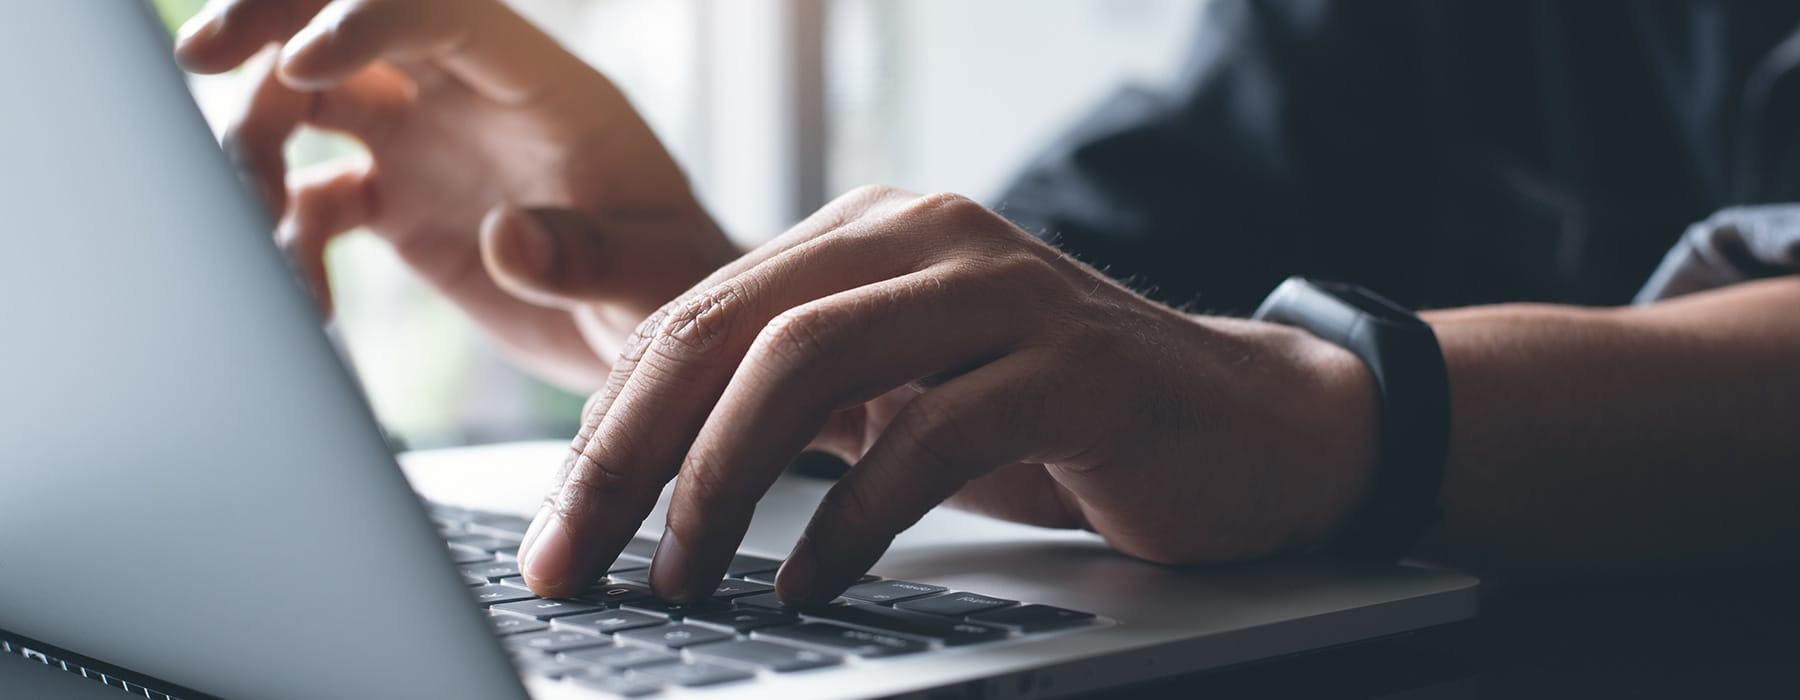 lifestyle image of hands typing on a laptop